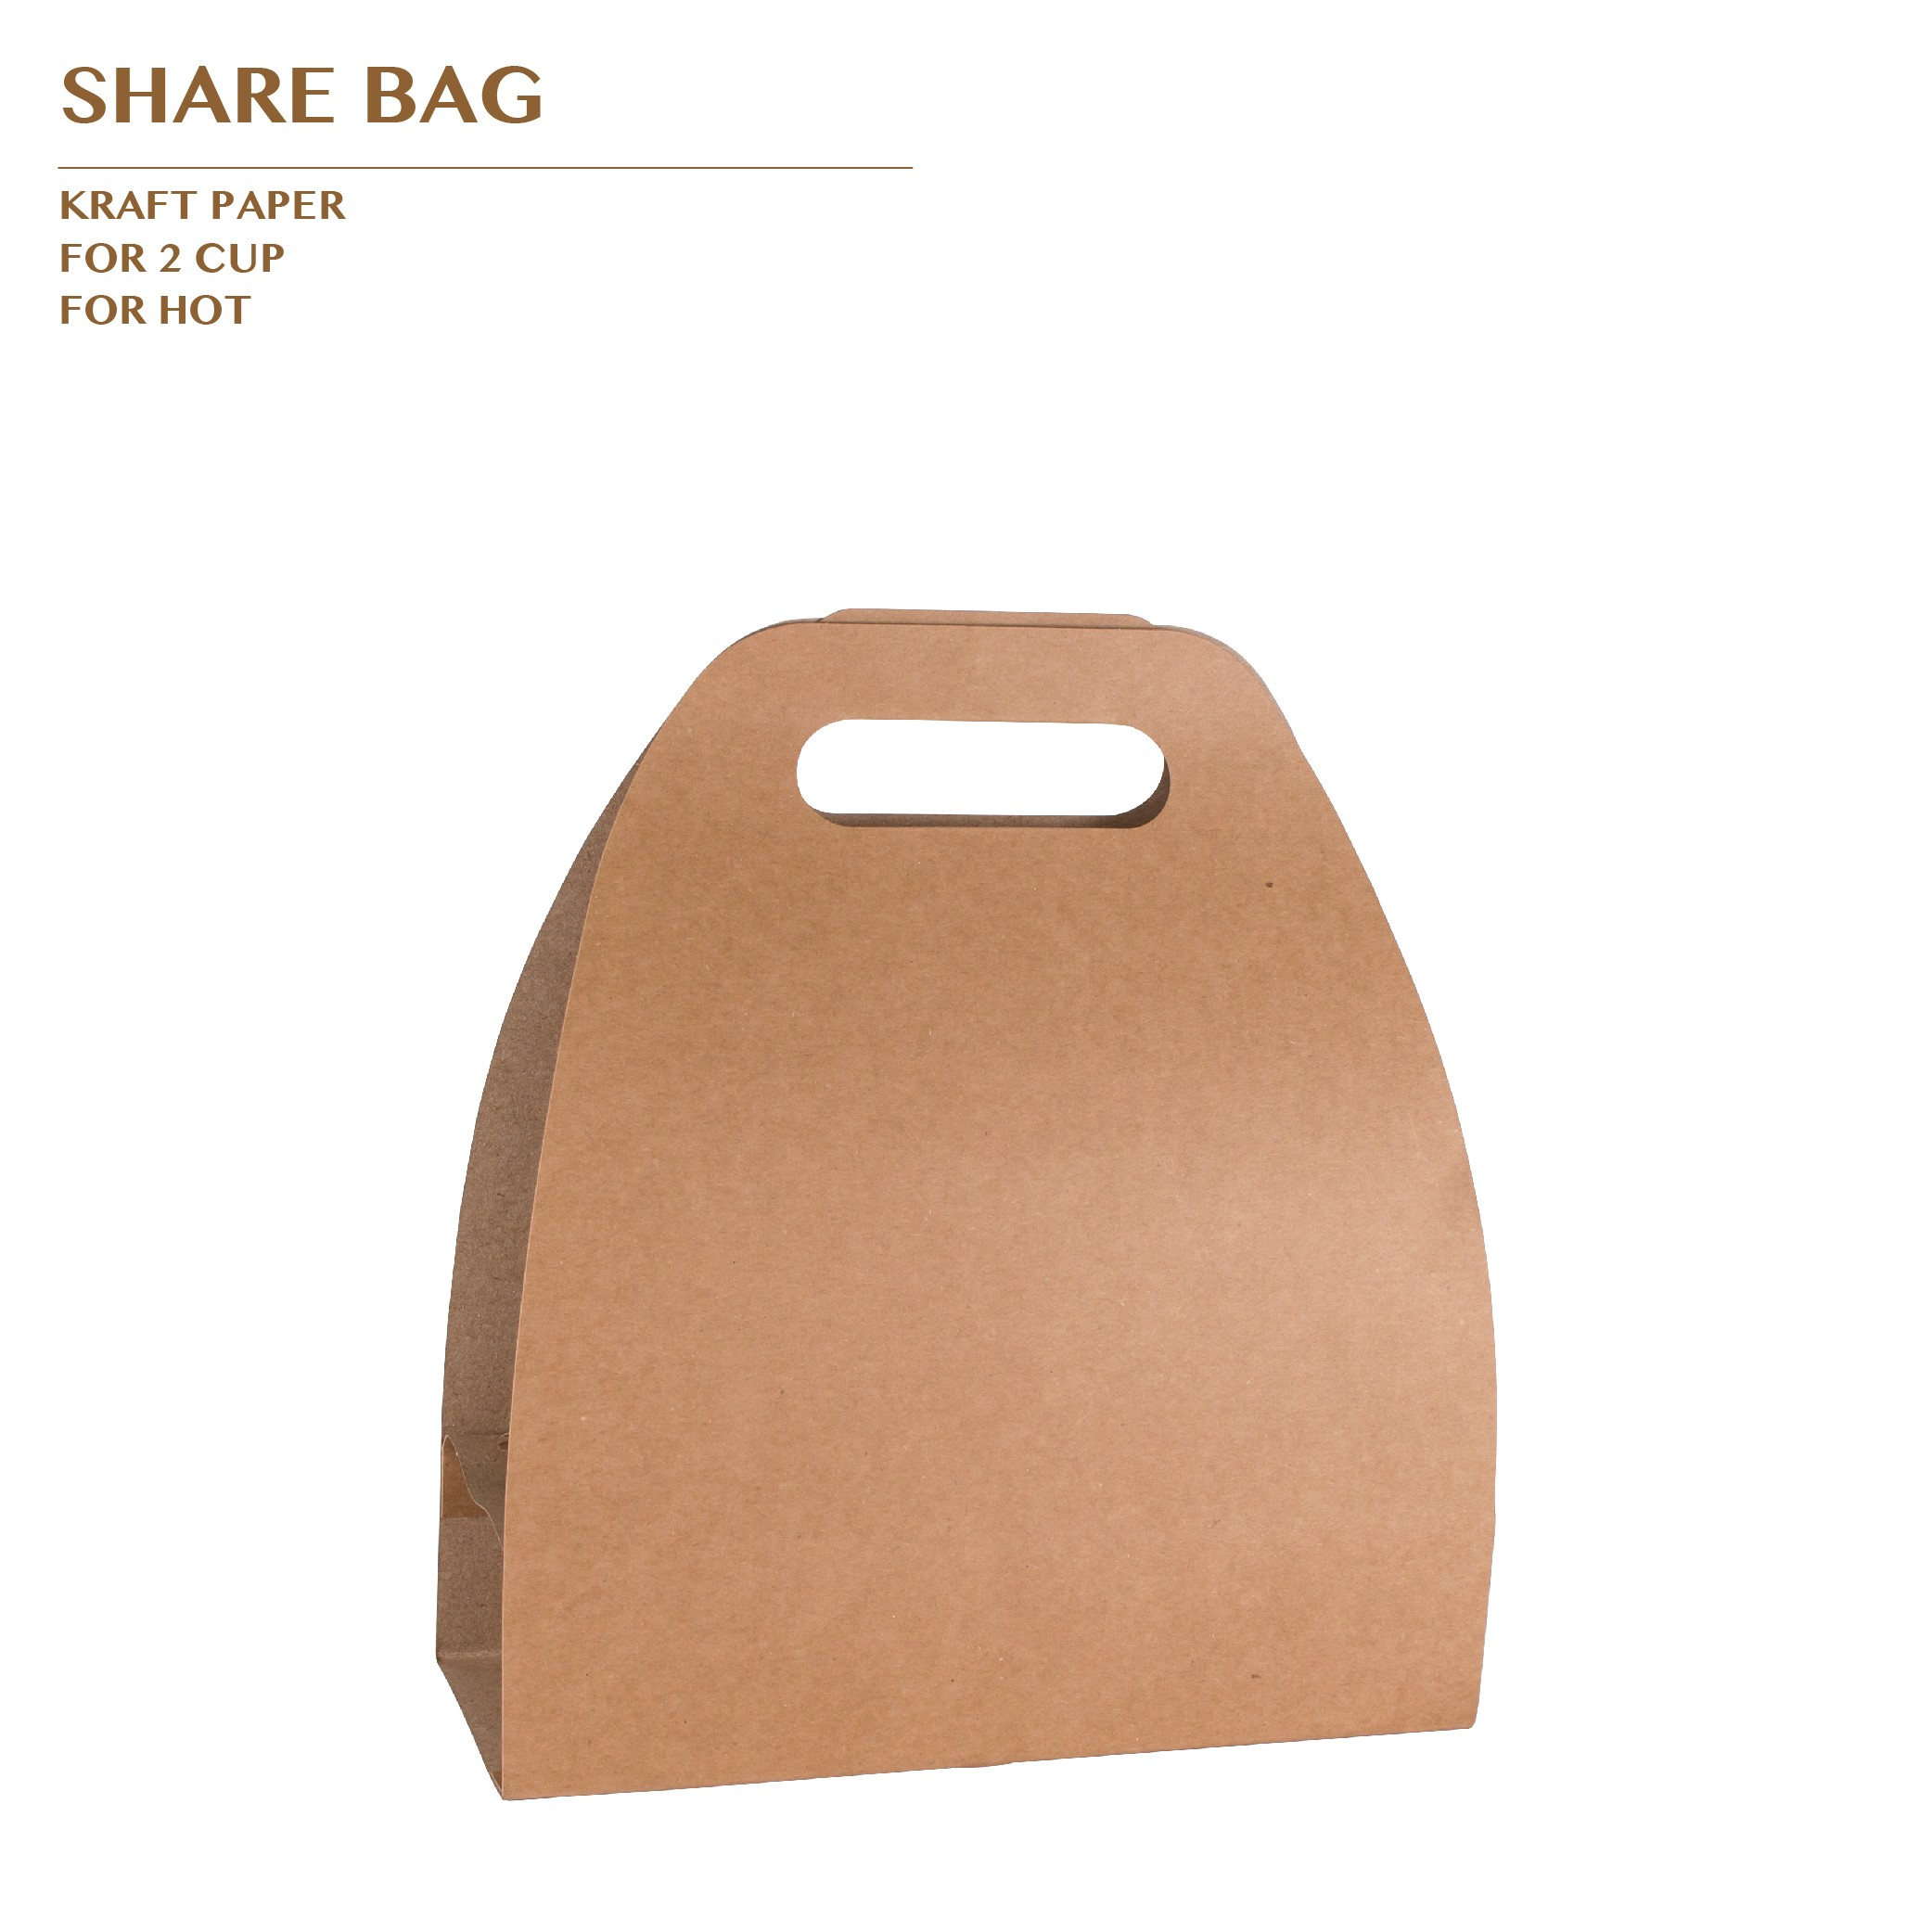 SHARE BAG FOR 2 CUP 500PCS/CTN